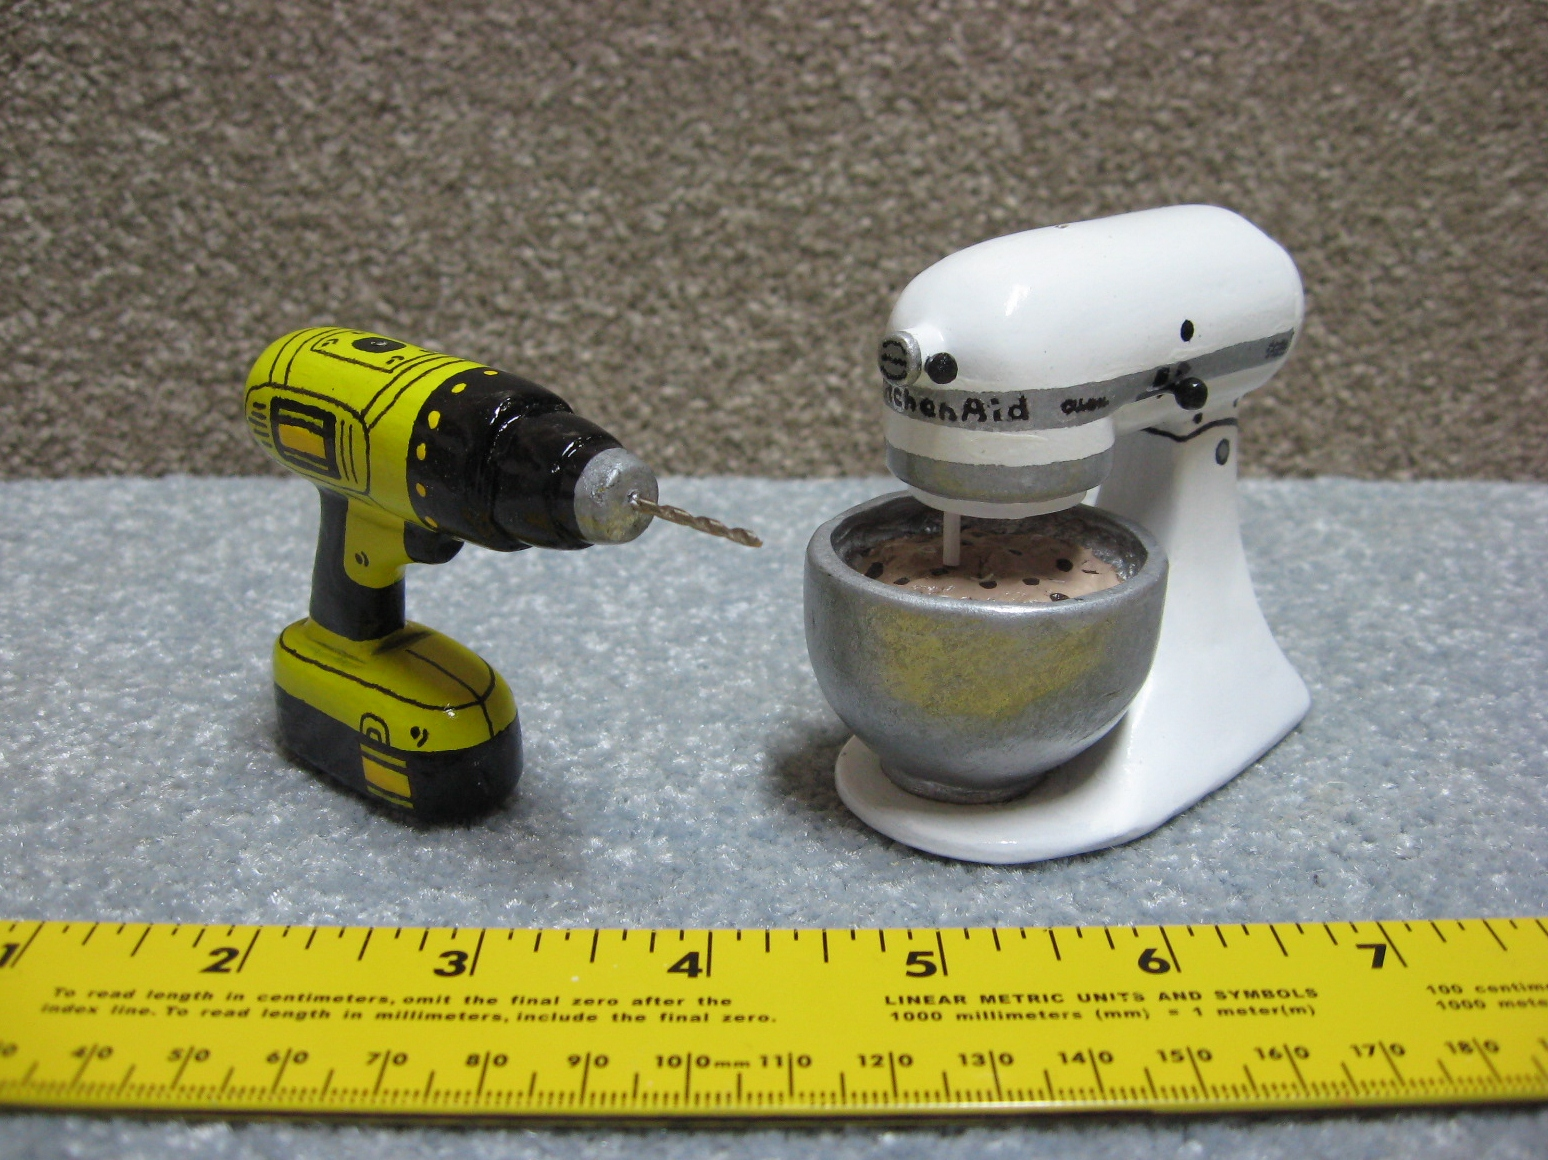 Kitchenaid and Power Drill Christmas Ornaments